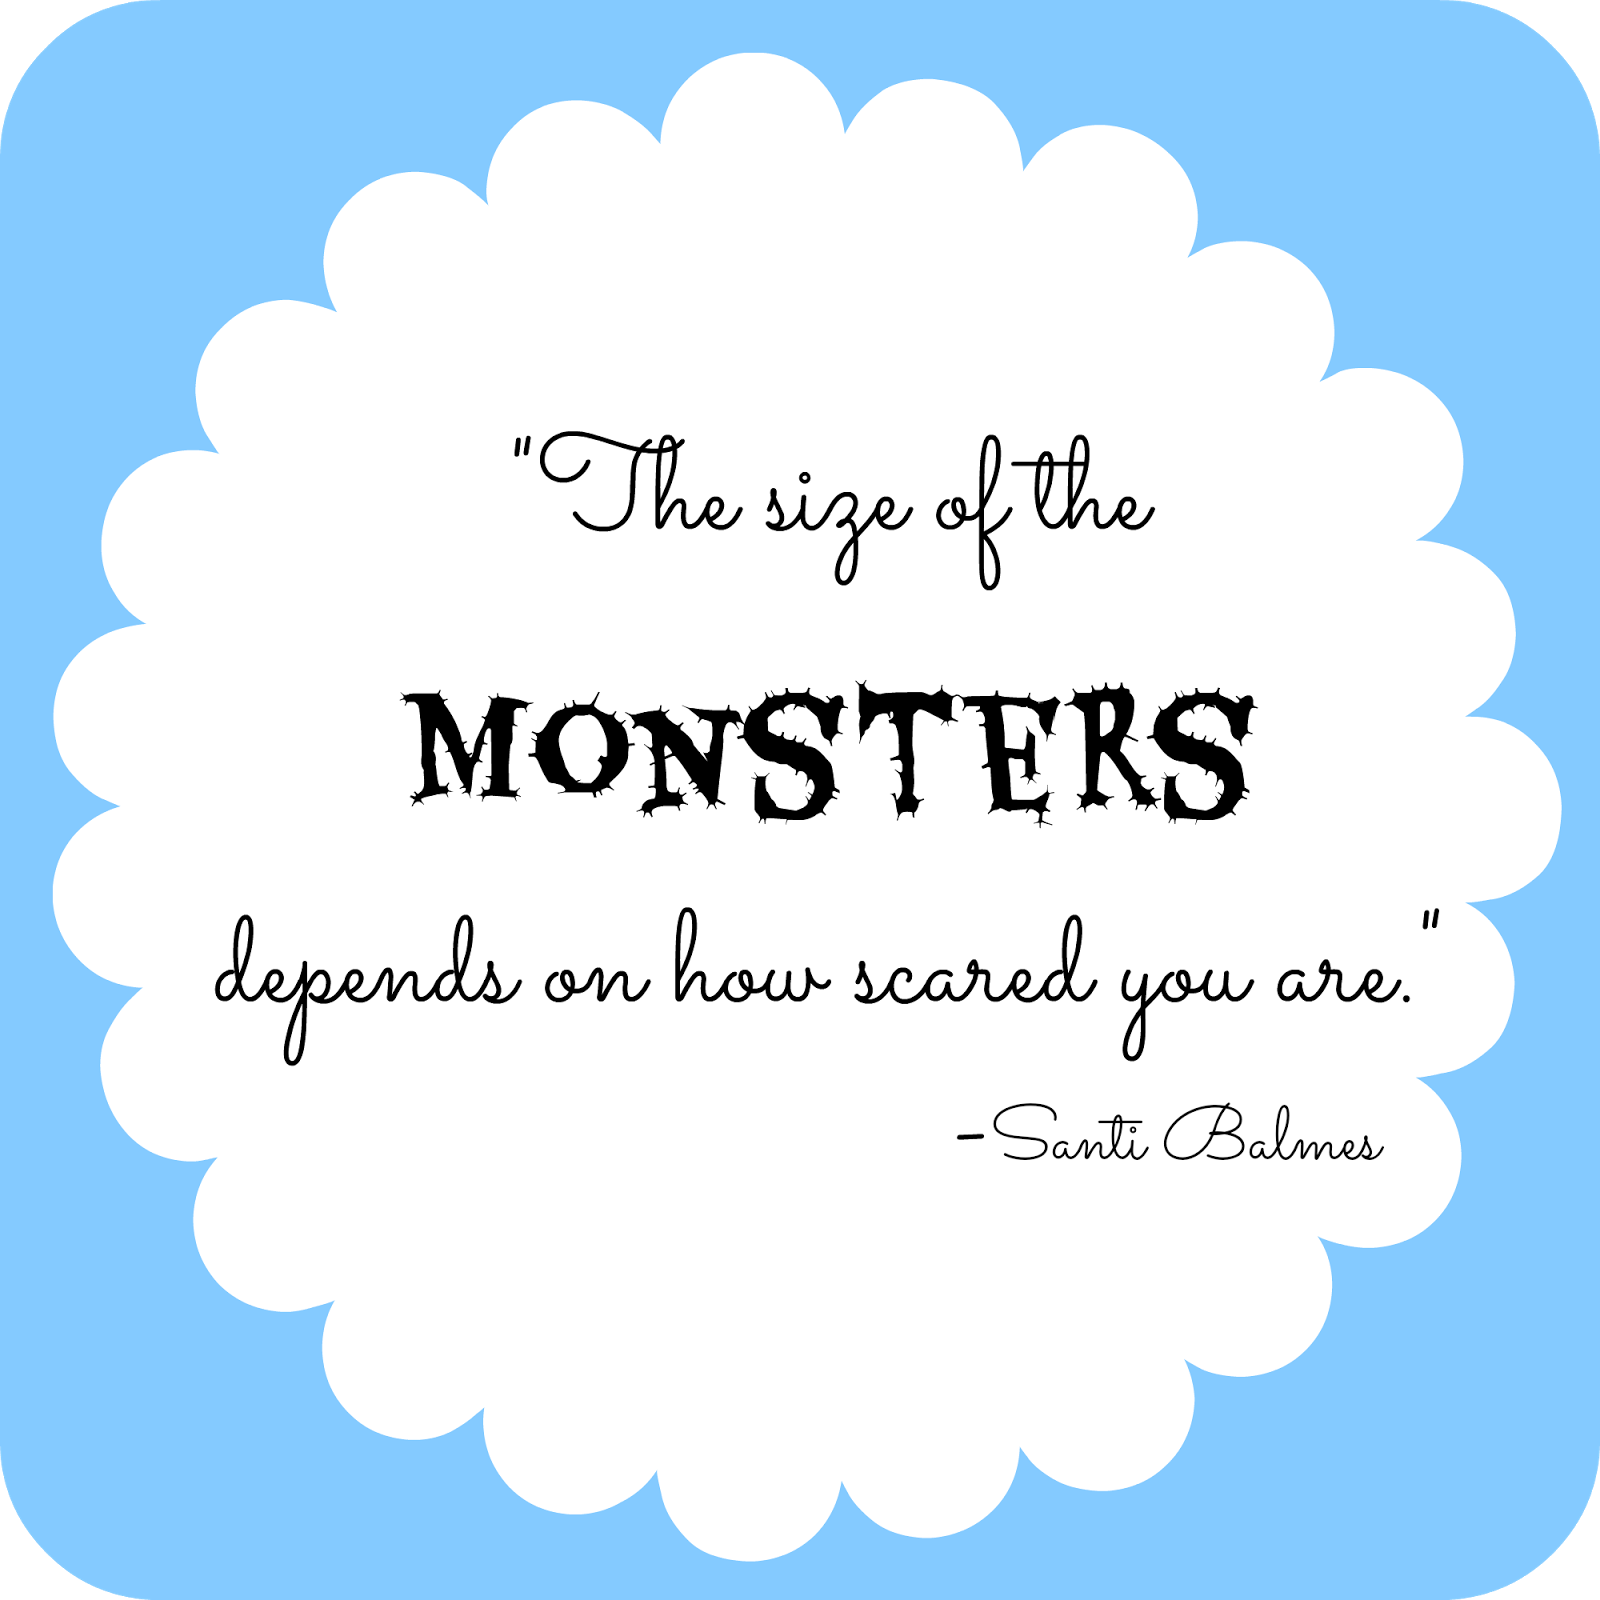 The size of the monsters depends on how scared you are - quote from I Will Fight Monsters for You by Santi Balmes